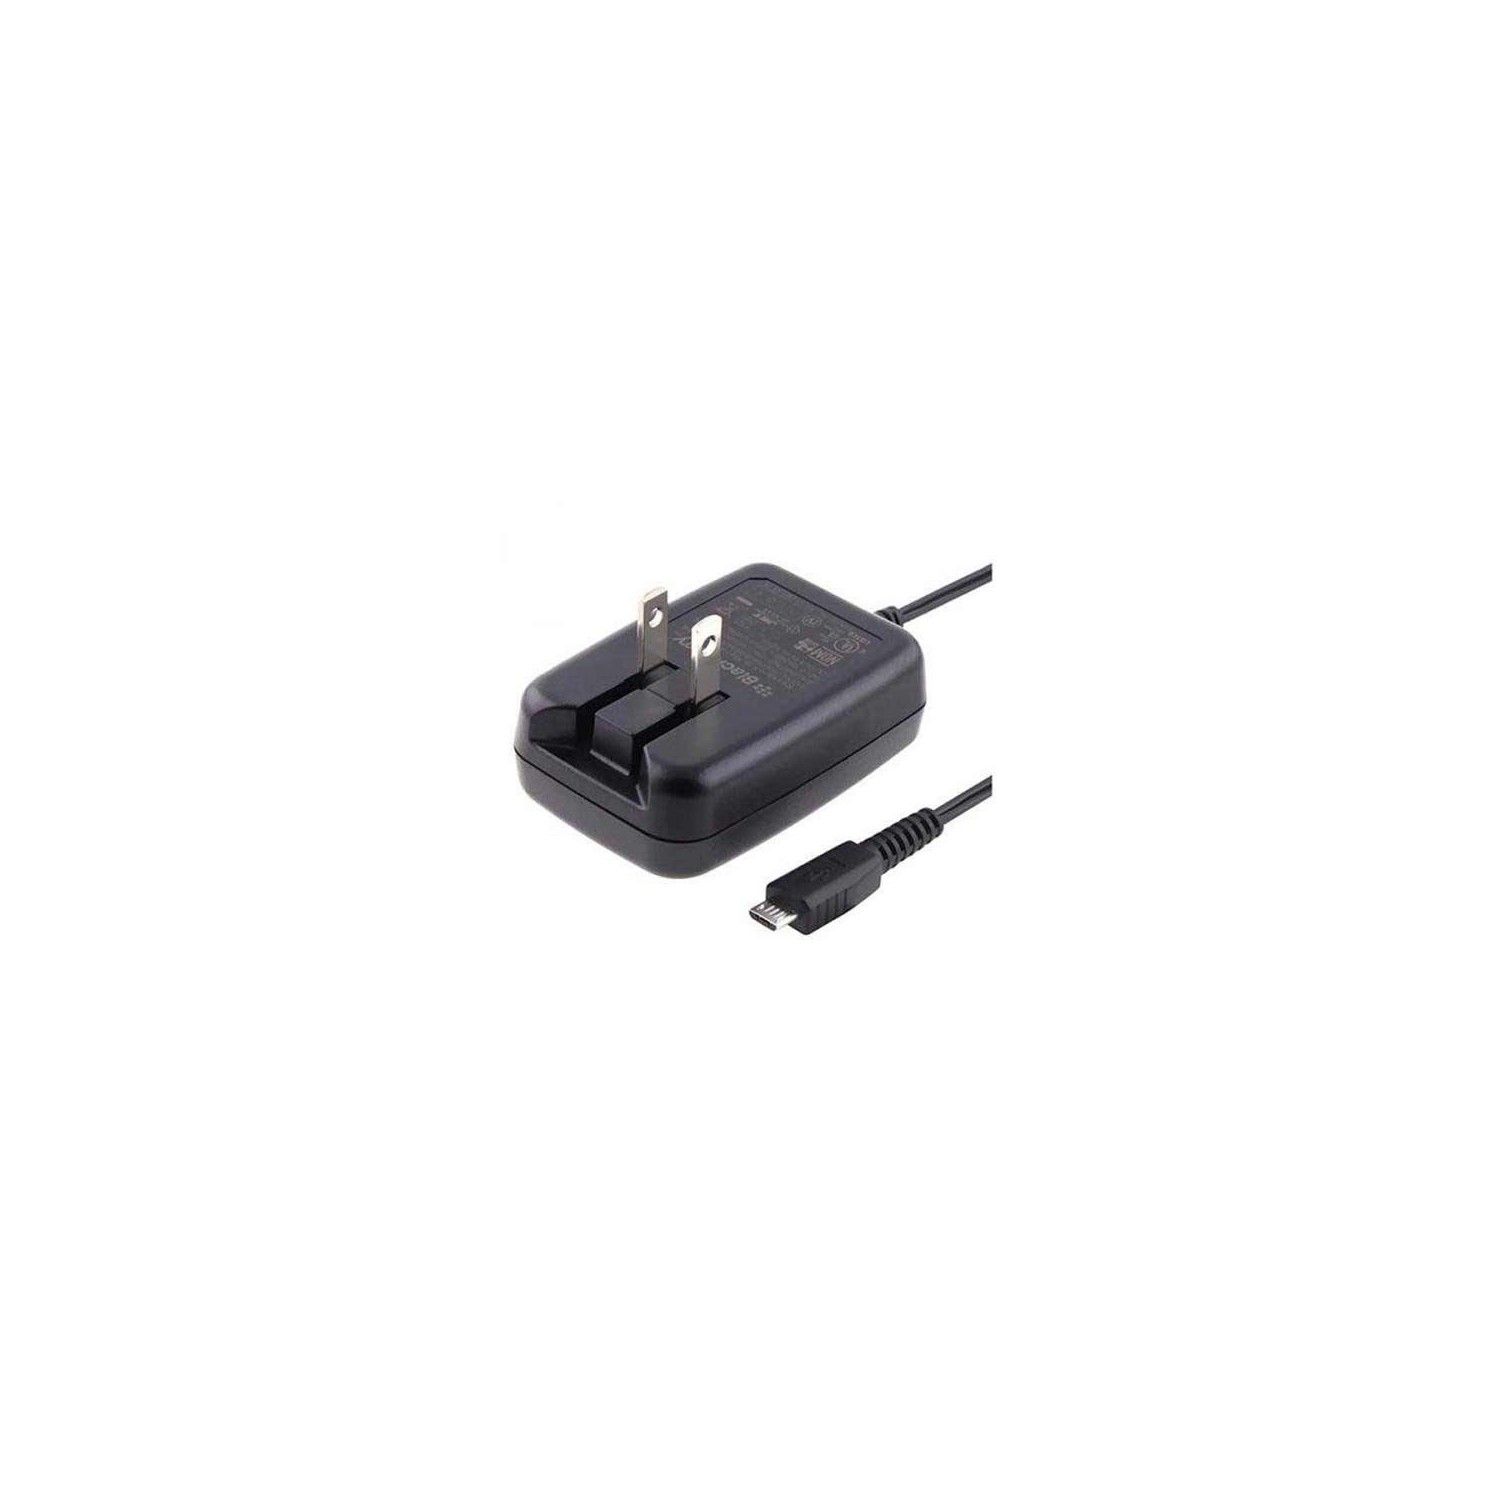 Charger - Blackberry OEM AC micro USB Charger